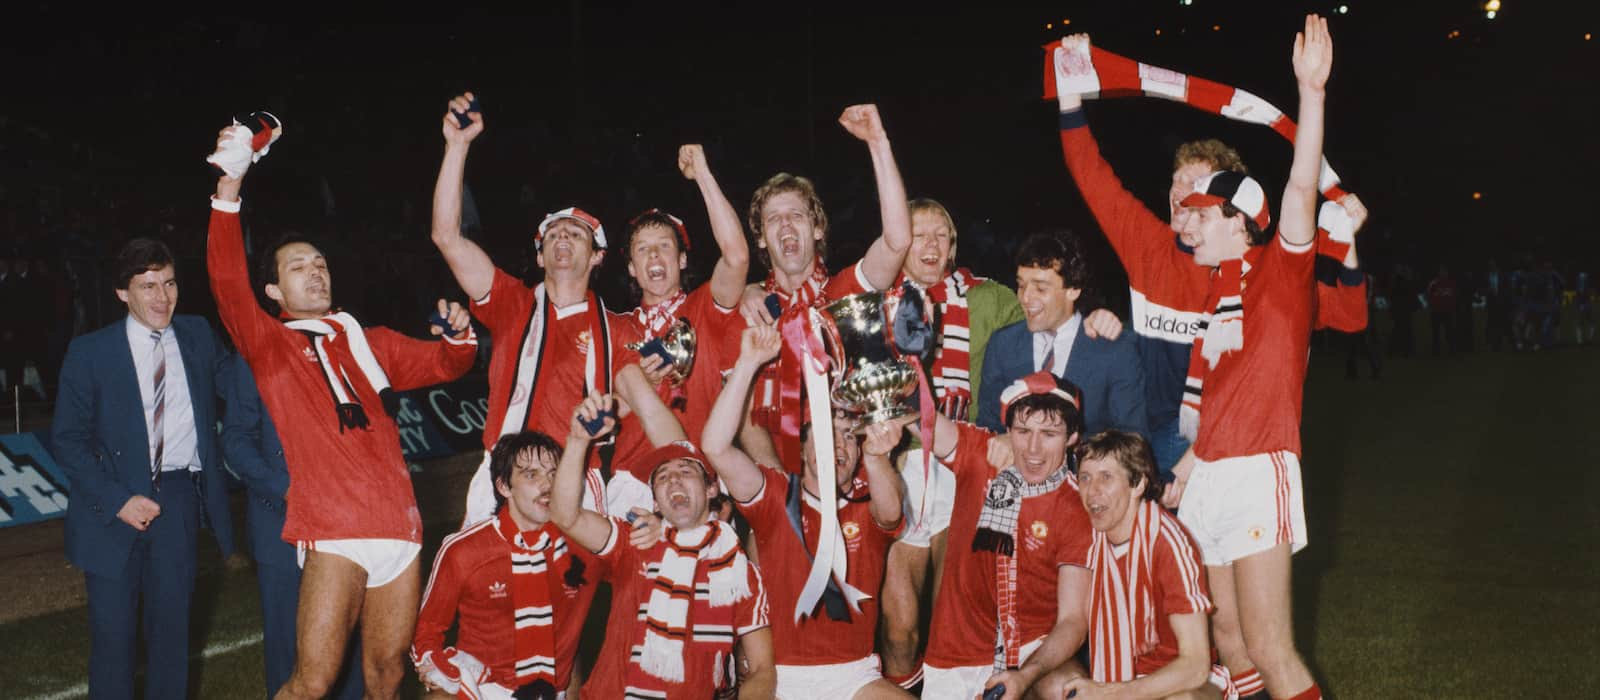 FA Cup Final Series 1982/3: Manchester United 4-0 Brighton (2-2 replay)